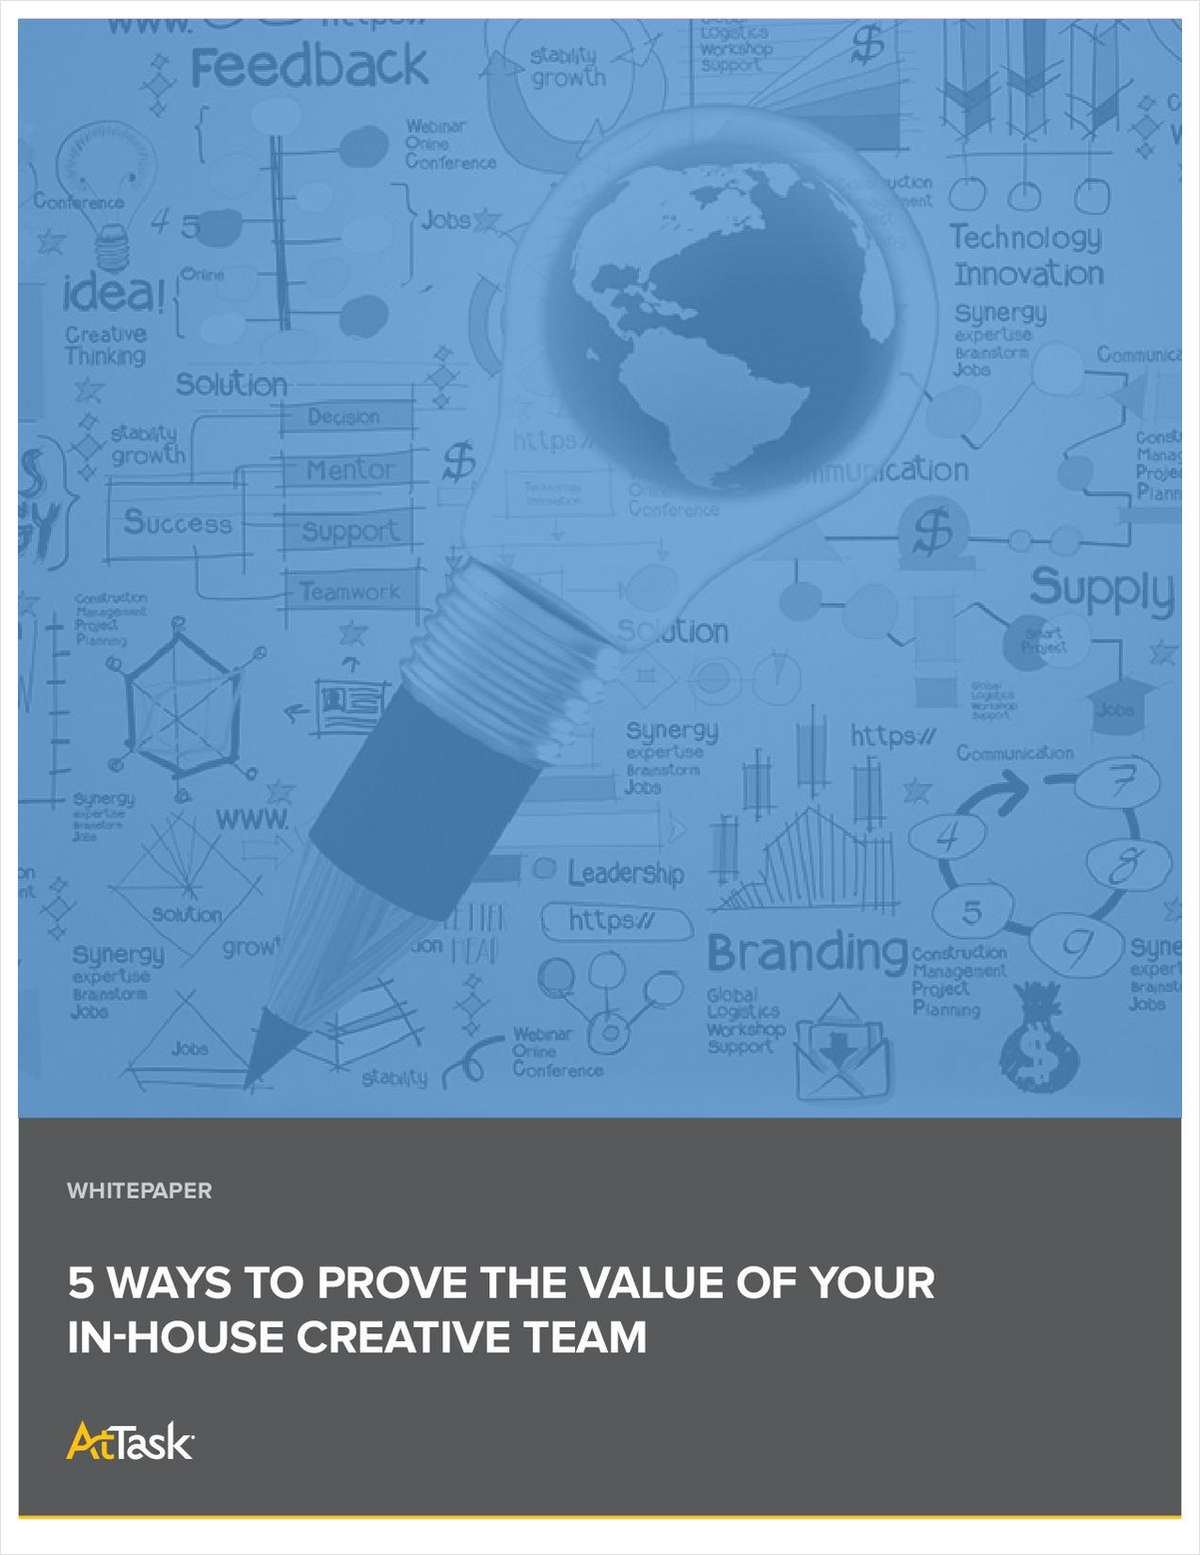 5 Ways to Prove the Value of Your In-House Creative Team